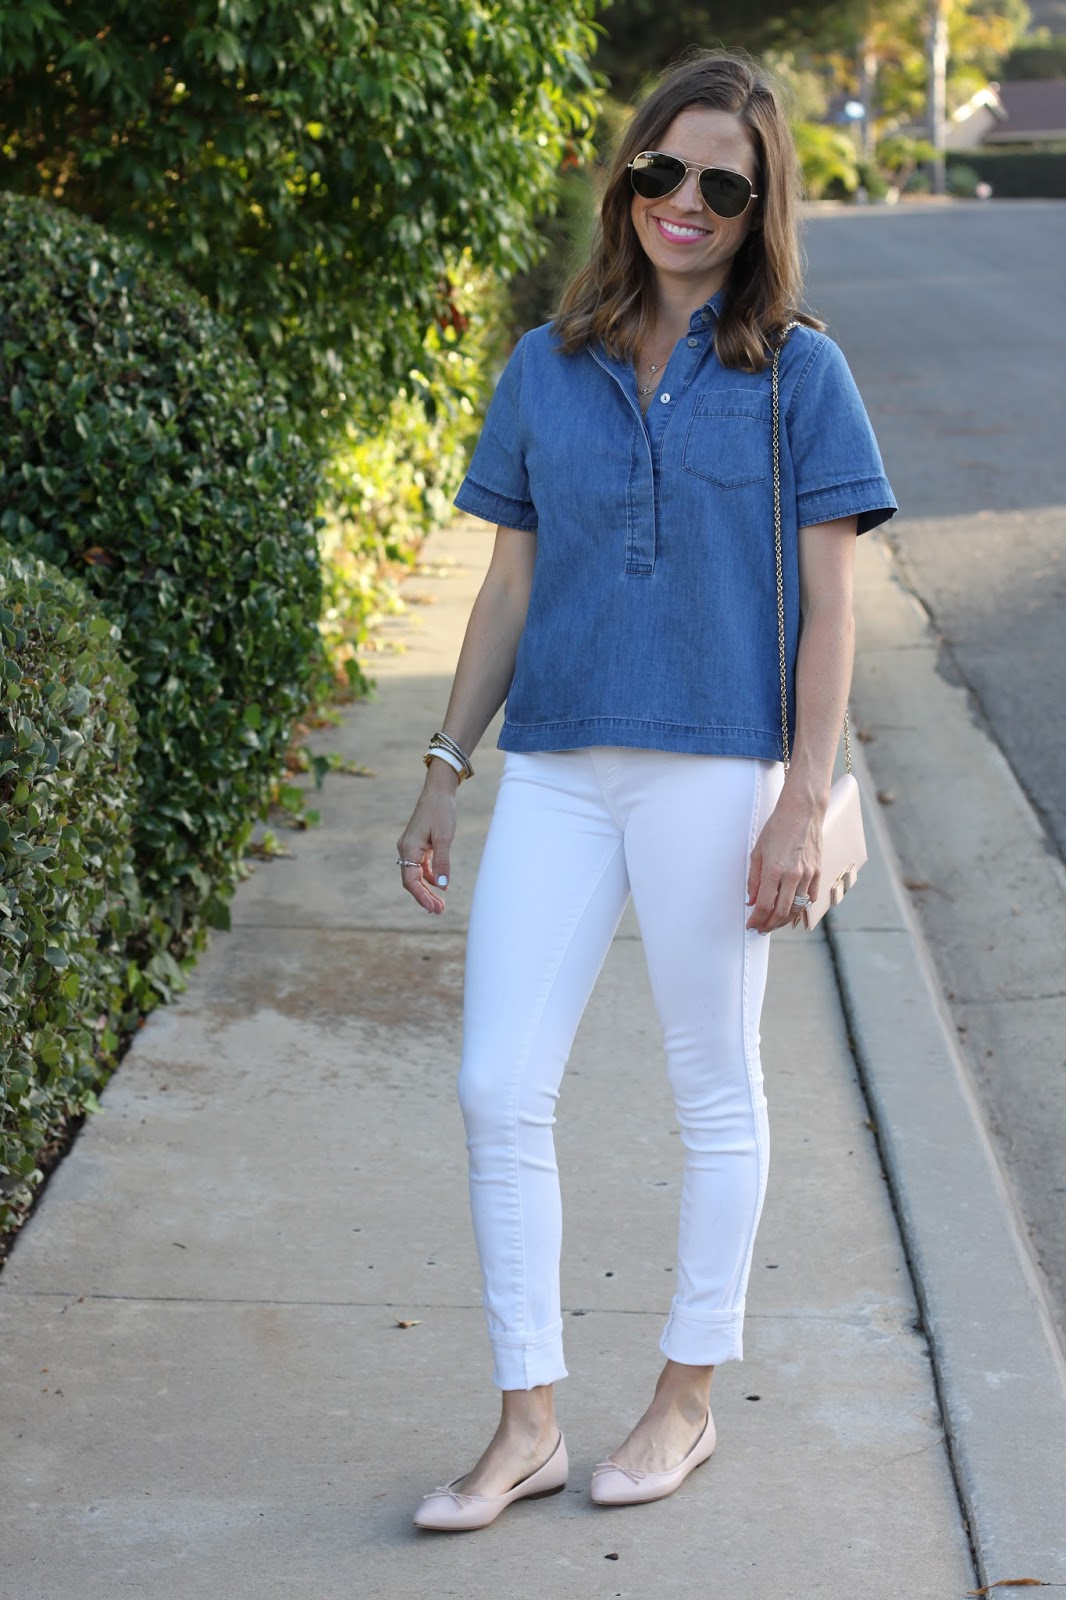 denim shirt and white skinny jeans